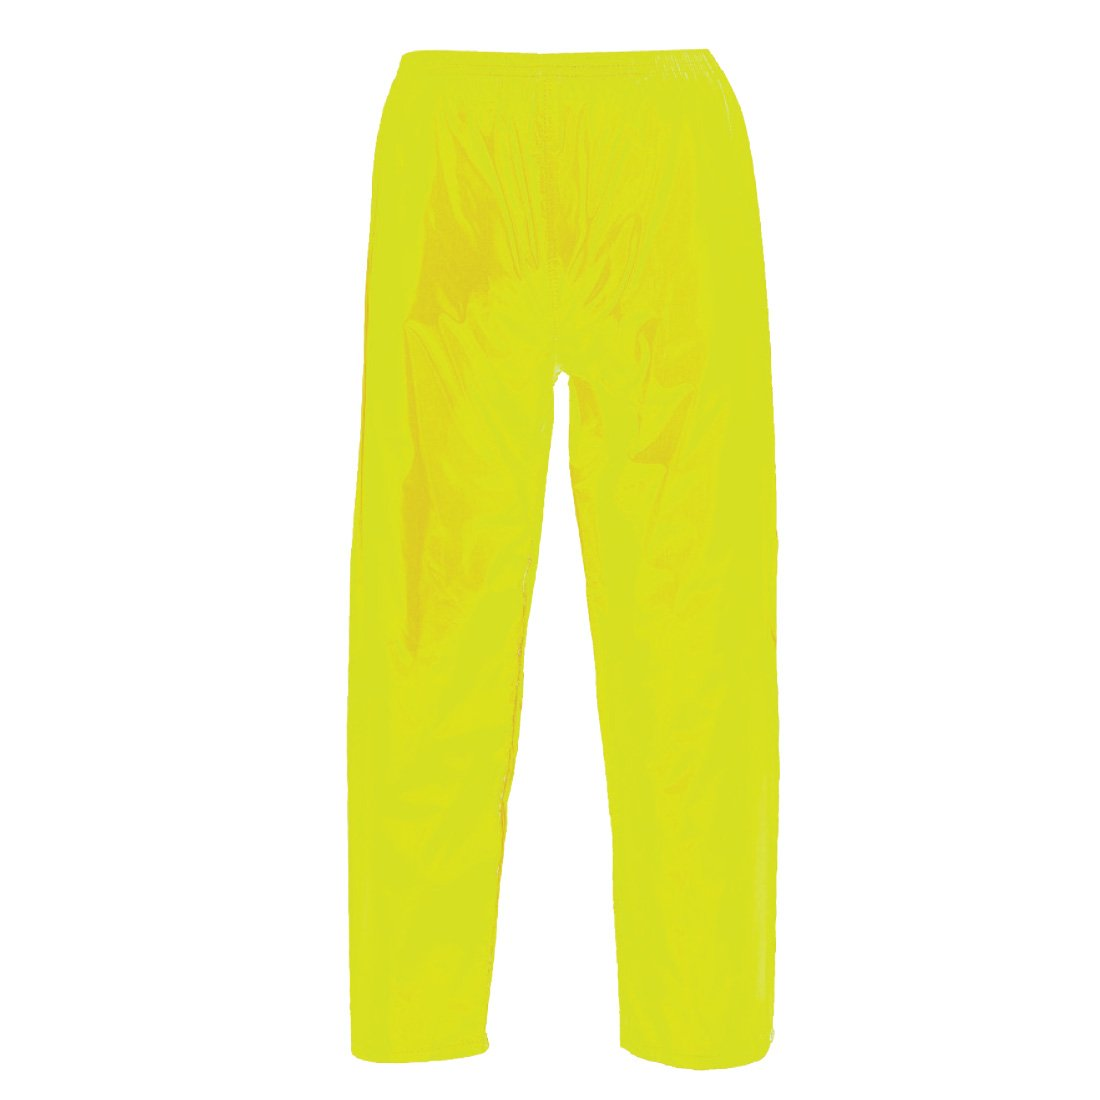 Portwest US441YERS Regular Fit Classic Adult Rain Pants, Small, Yellow